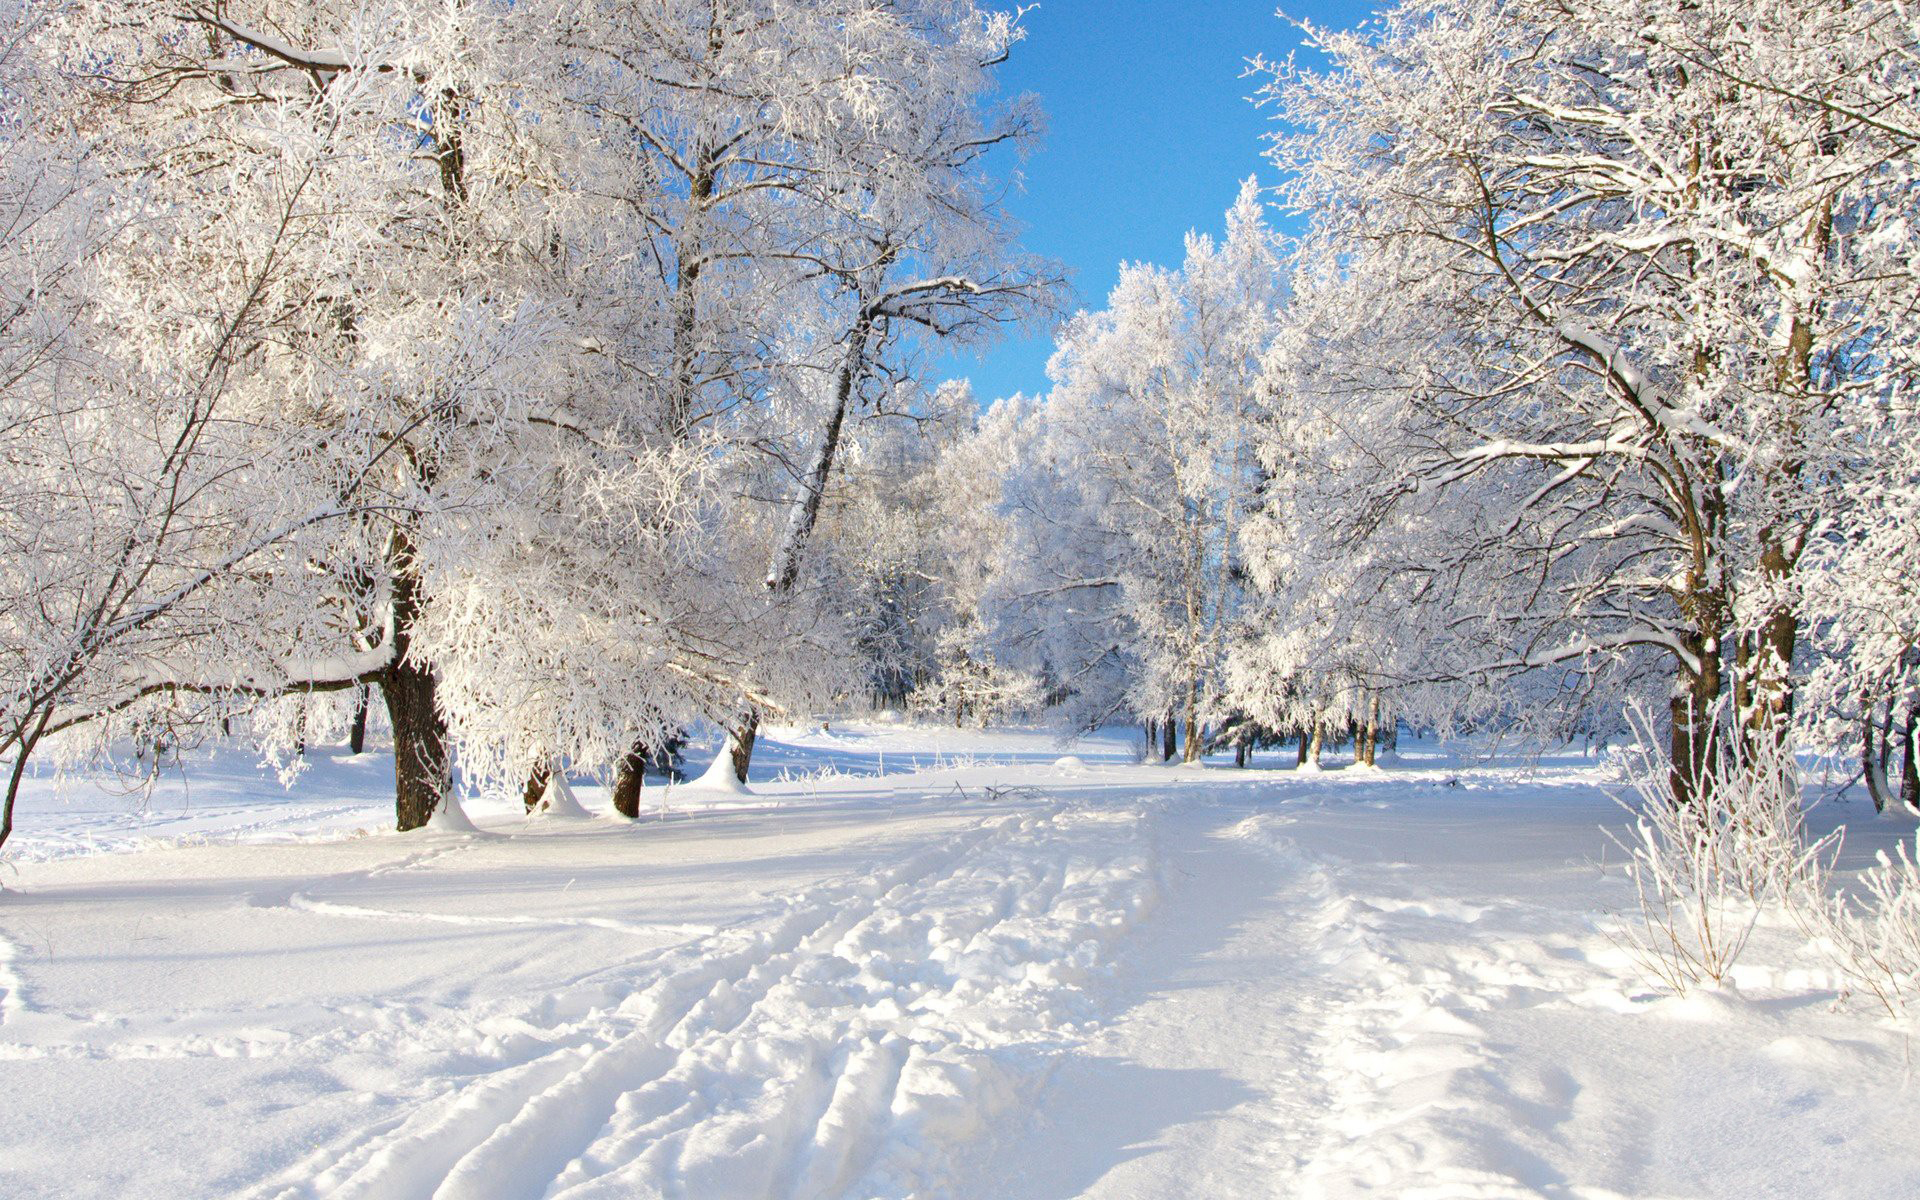 Free Winter Desktop Wallpaper HD Wallpapers